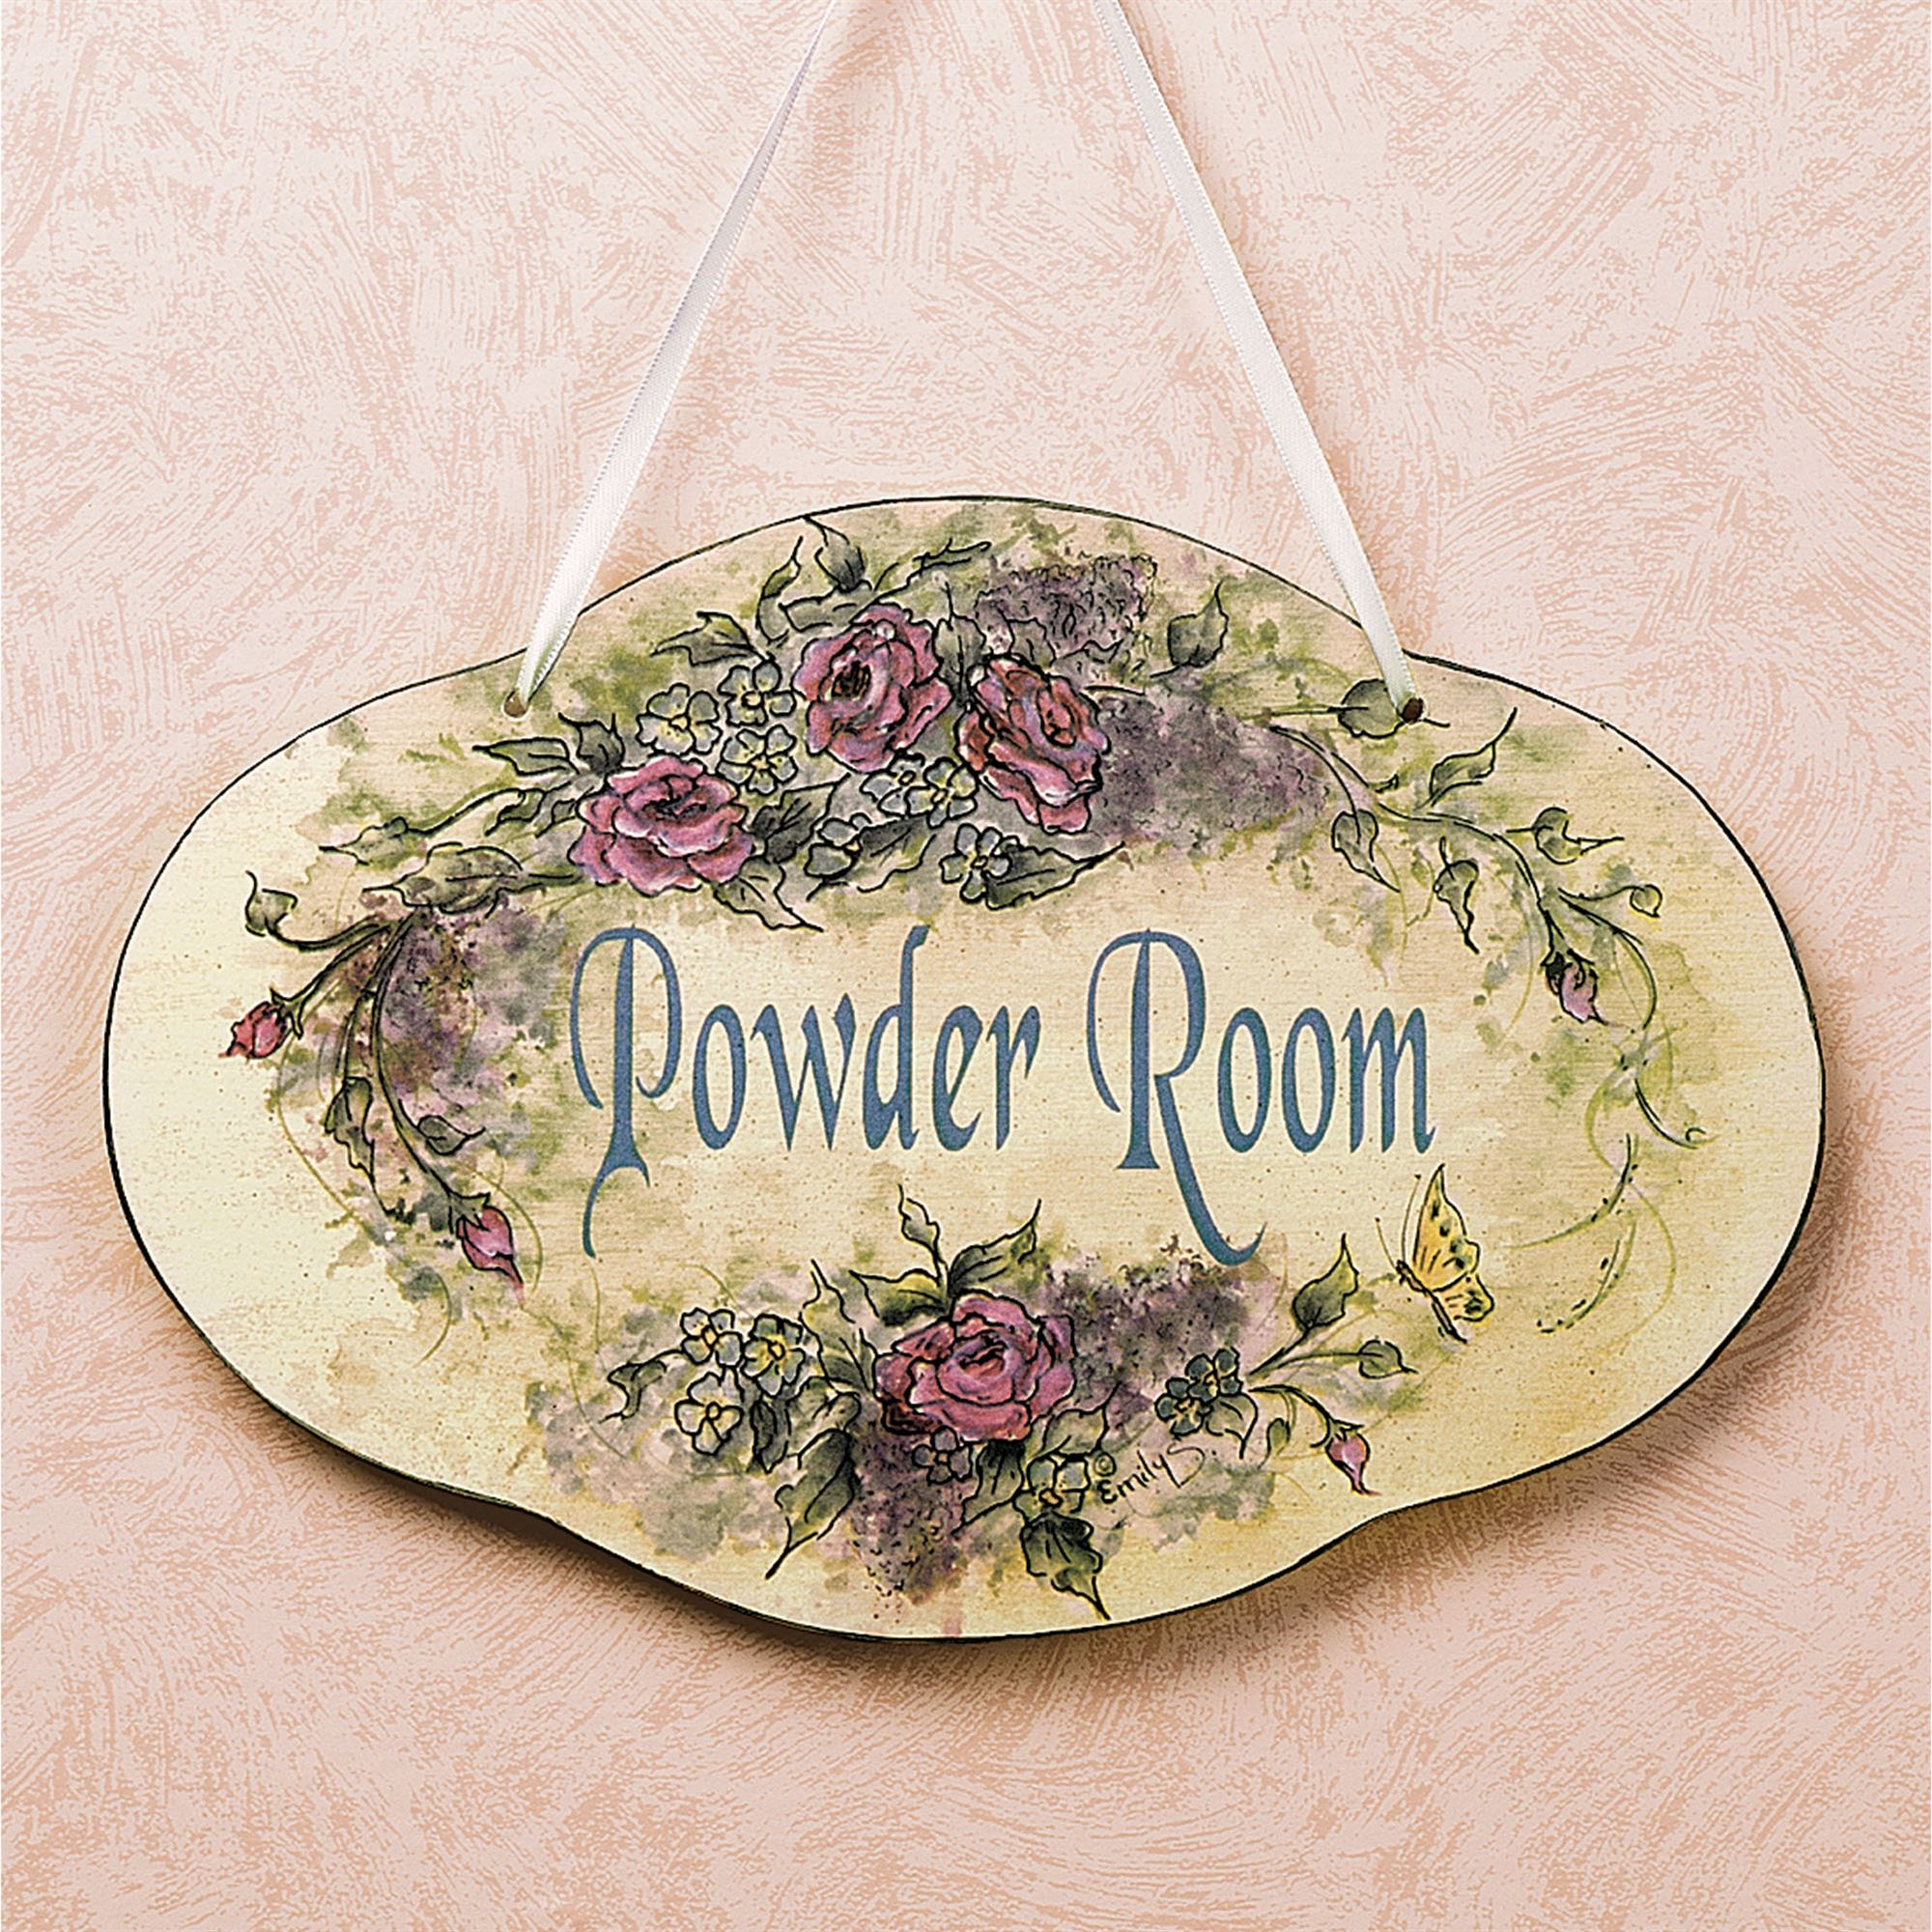 Powder Room Plaque. Click To Expand